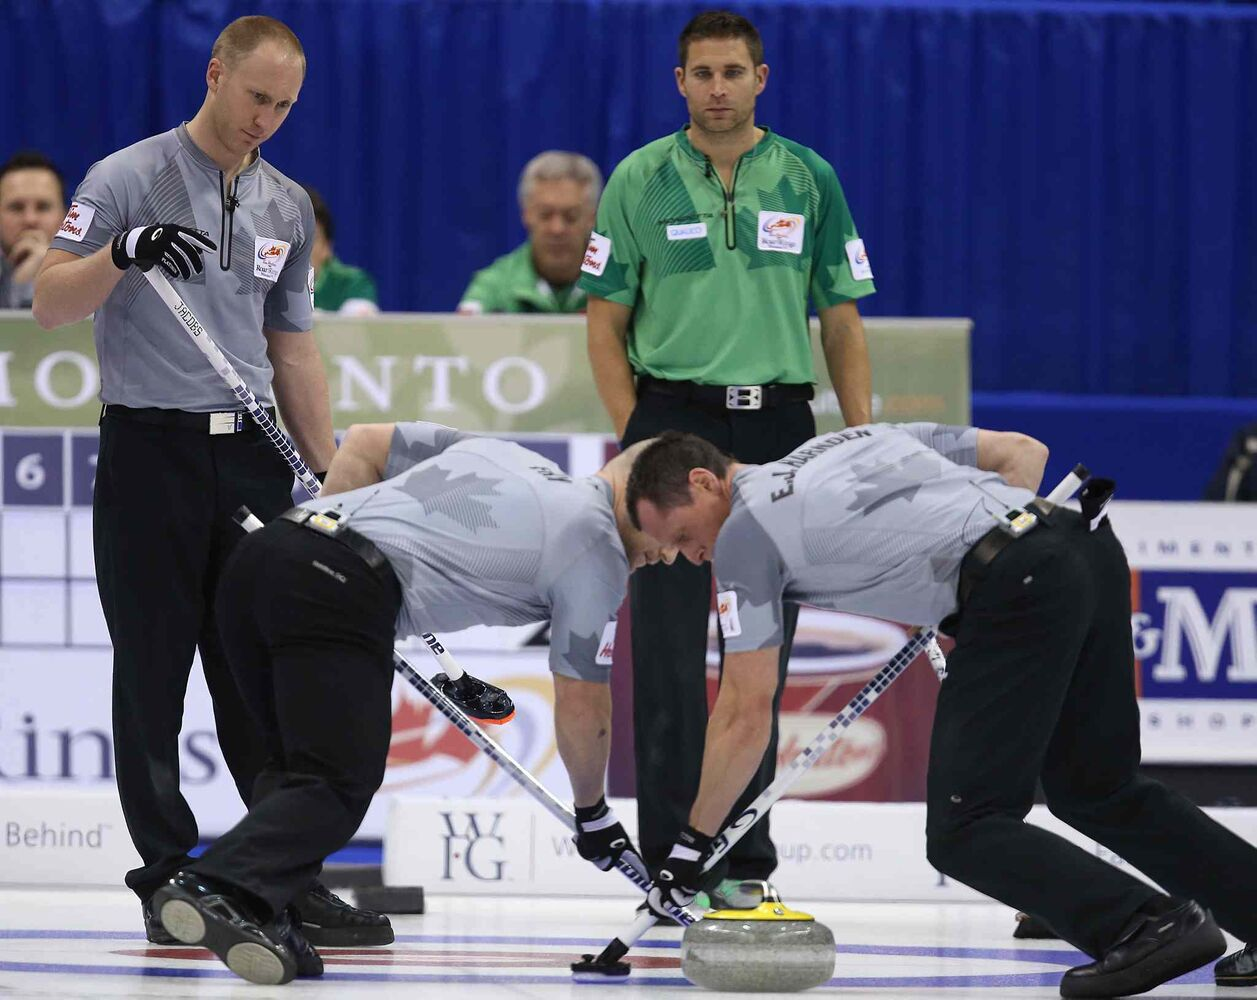 Skip Brad Jacobs (left) watches a shot during action against John Morris (centre).